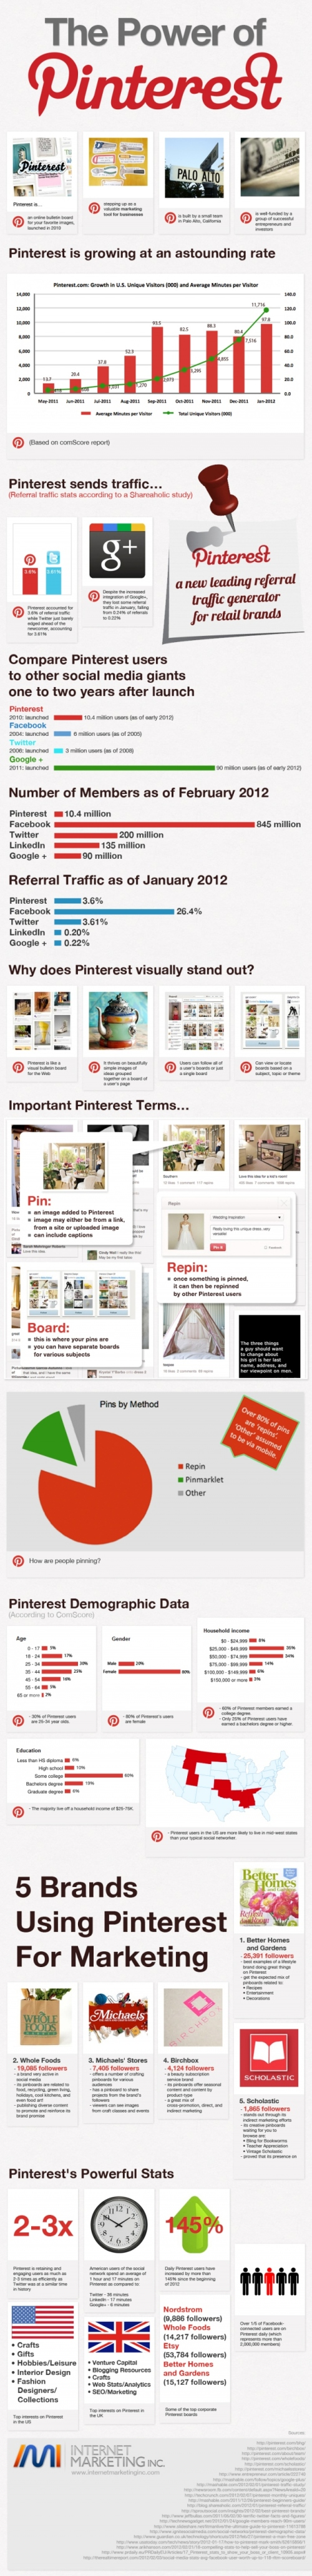 Power of Pinterest Infographic